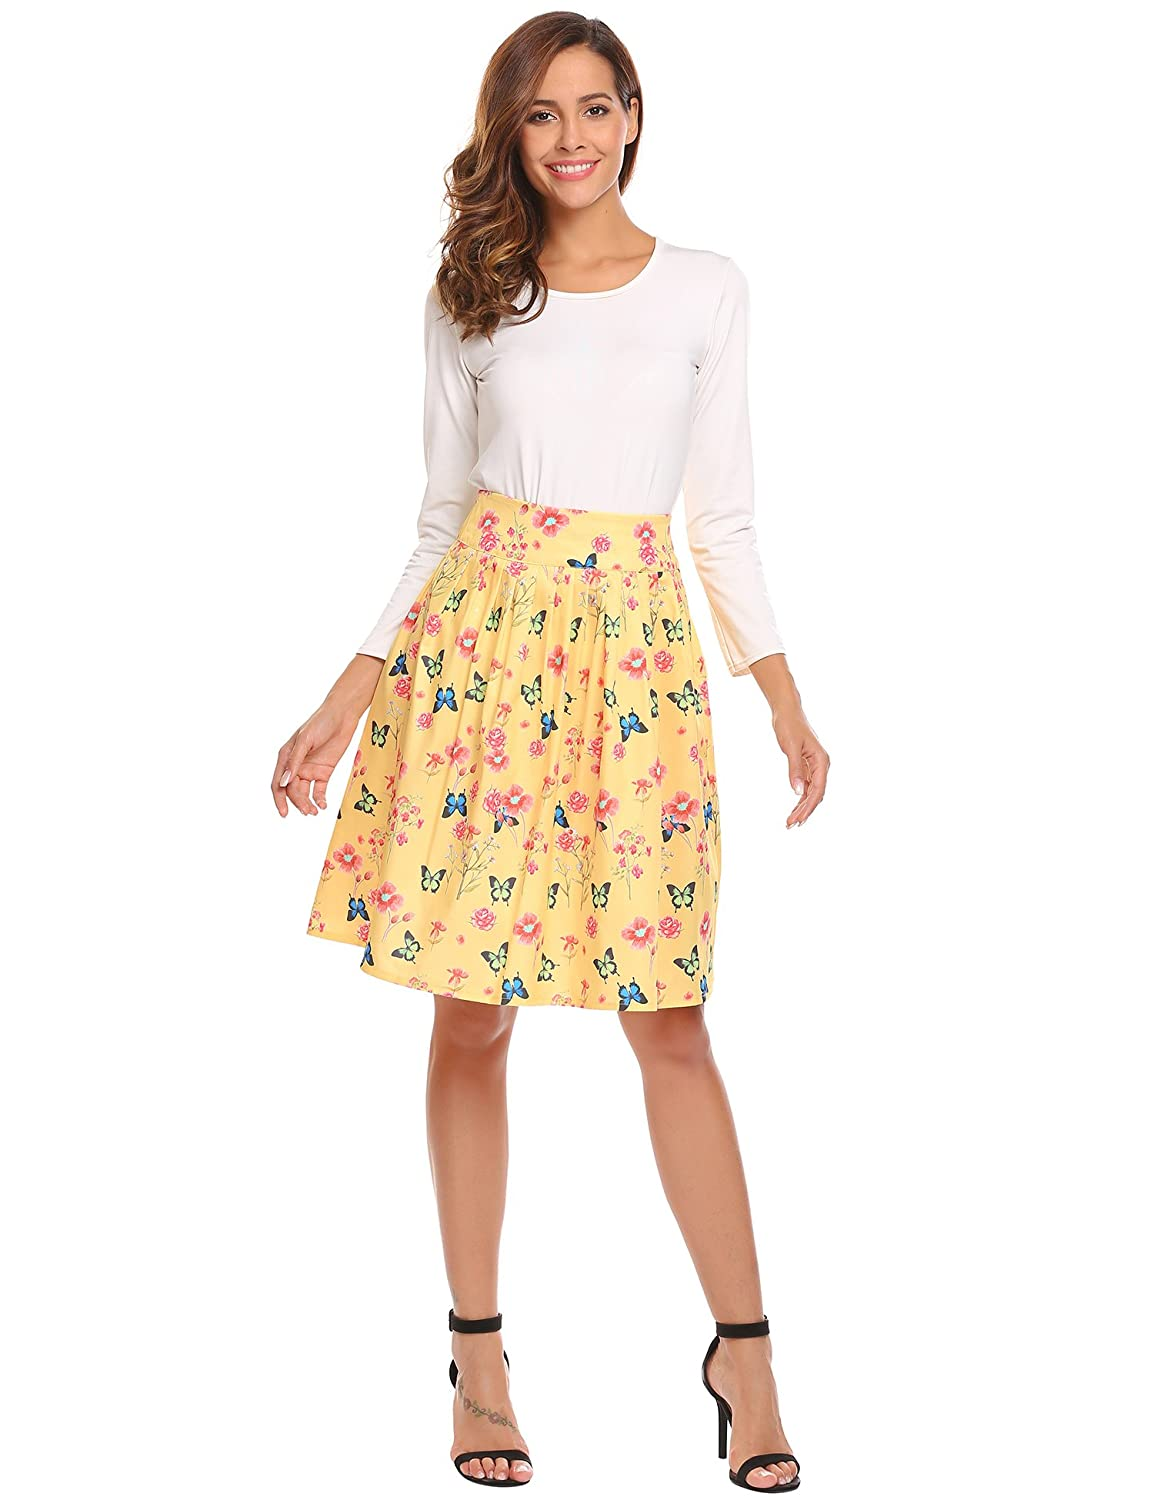 6ea3953f94 Midi A-line Pleated Floral Skirt, Women's Flare Flower Print Vintage High  Waist Knee Length Flowy Skirts for Girls Light Yellow Medium at Amazon  Women's ...